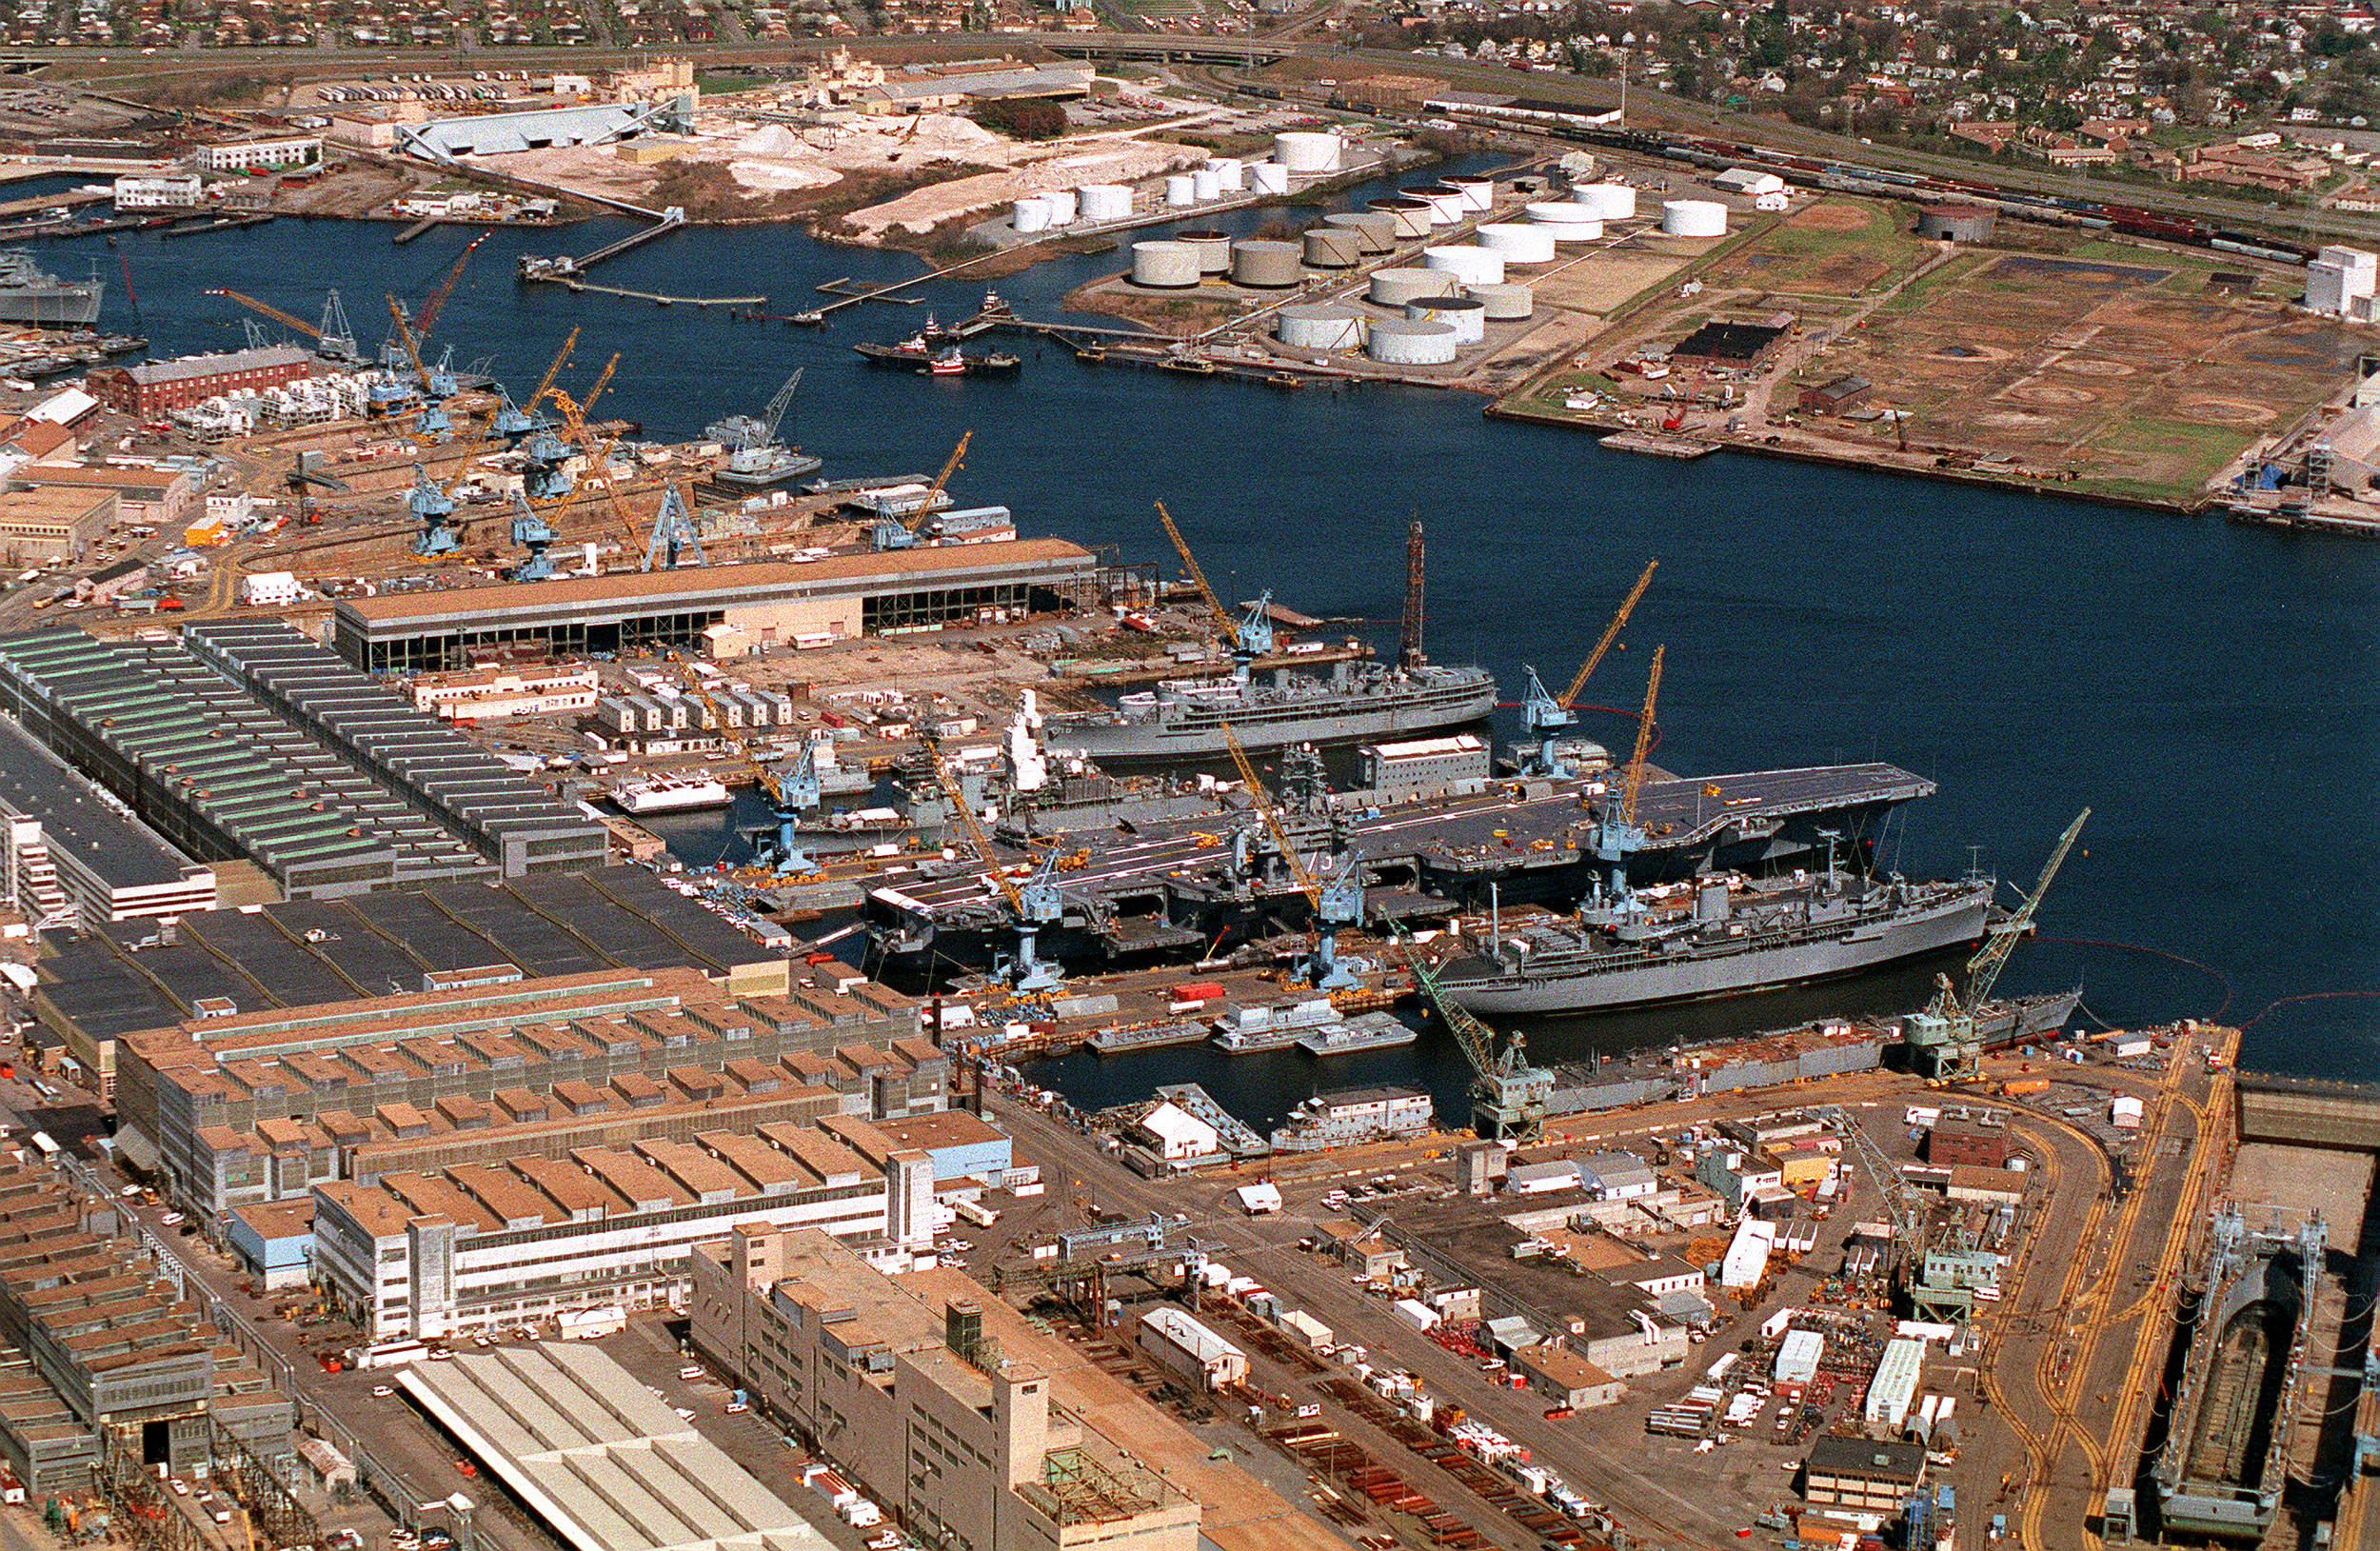 National Archives Identifier: 6490853 Aerial view of the Norfolk Naval Shipyard on the Elizabeth River